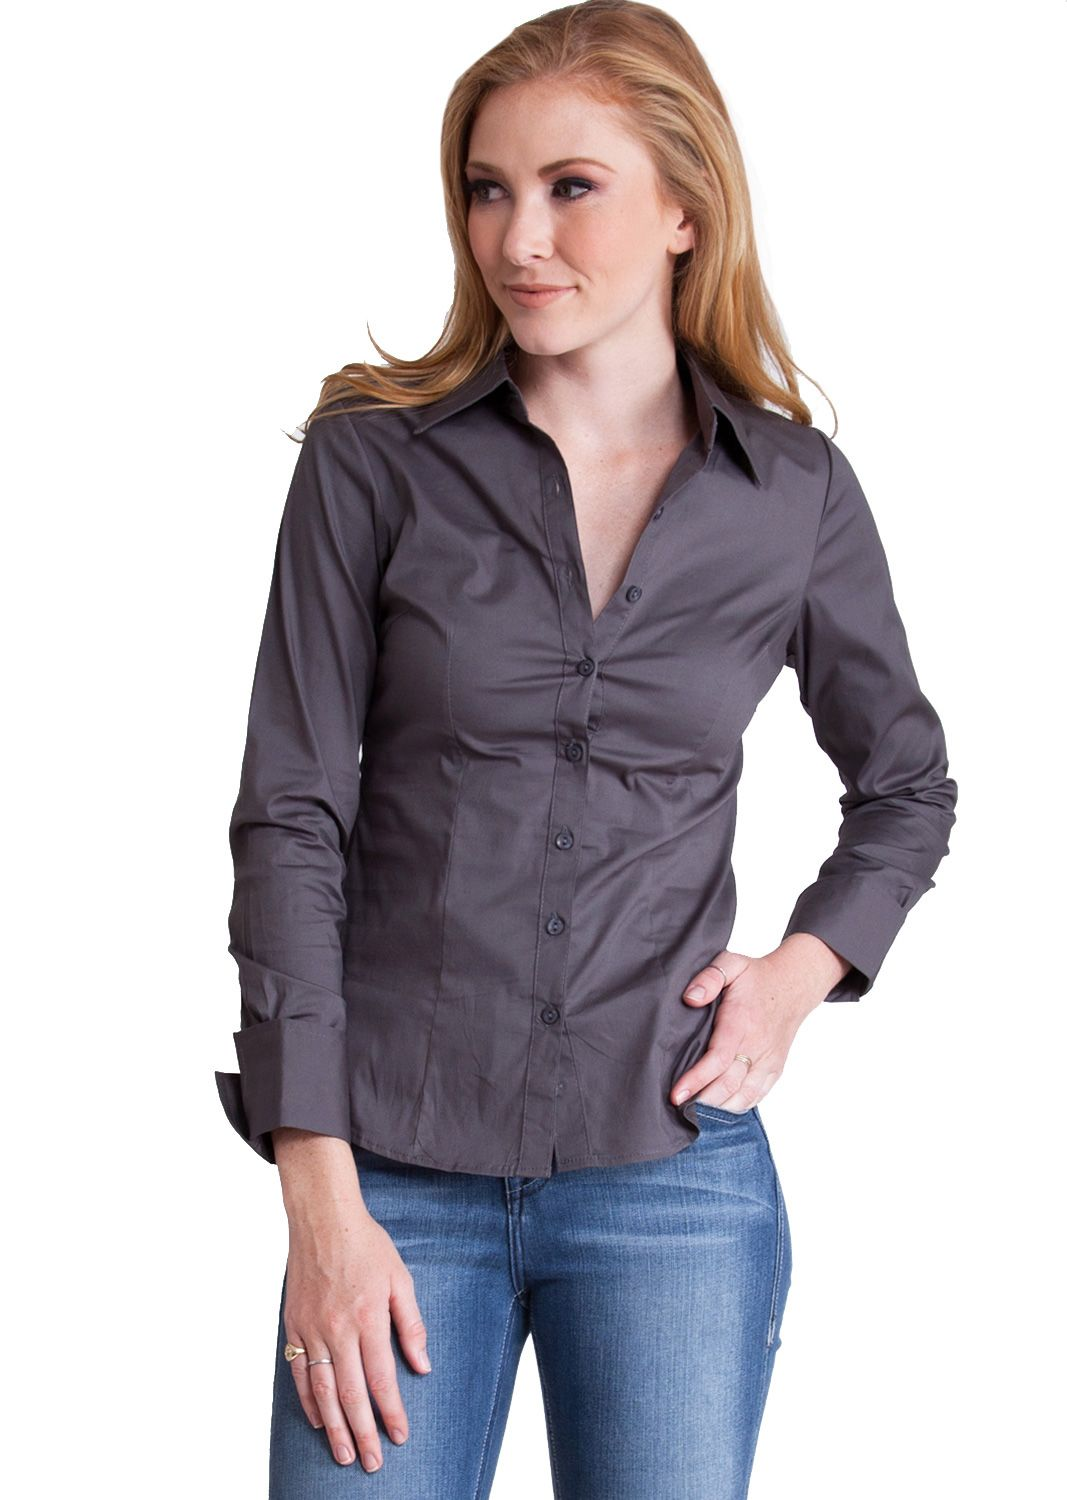 Tailored Long Sleeve Shirt T2936ch Clothing Clothes Womens Clothing Jeans Tops Womens Dress Long Sleeve Shirts Clothes For Women Shirt Sleeves [ 1500 x 1067 Pixel ]